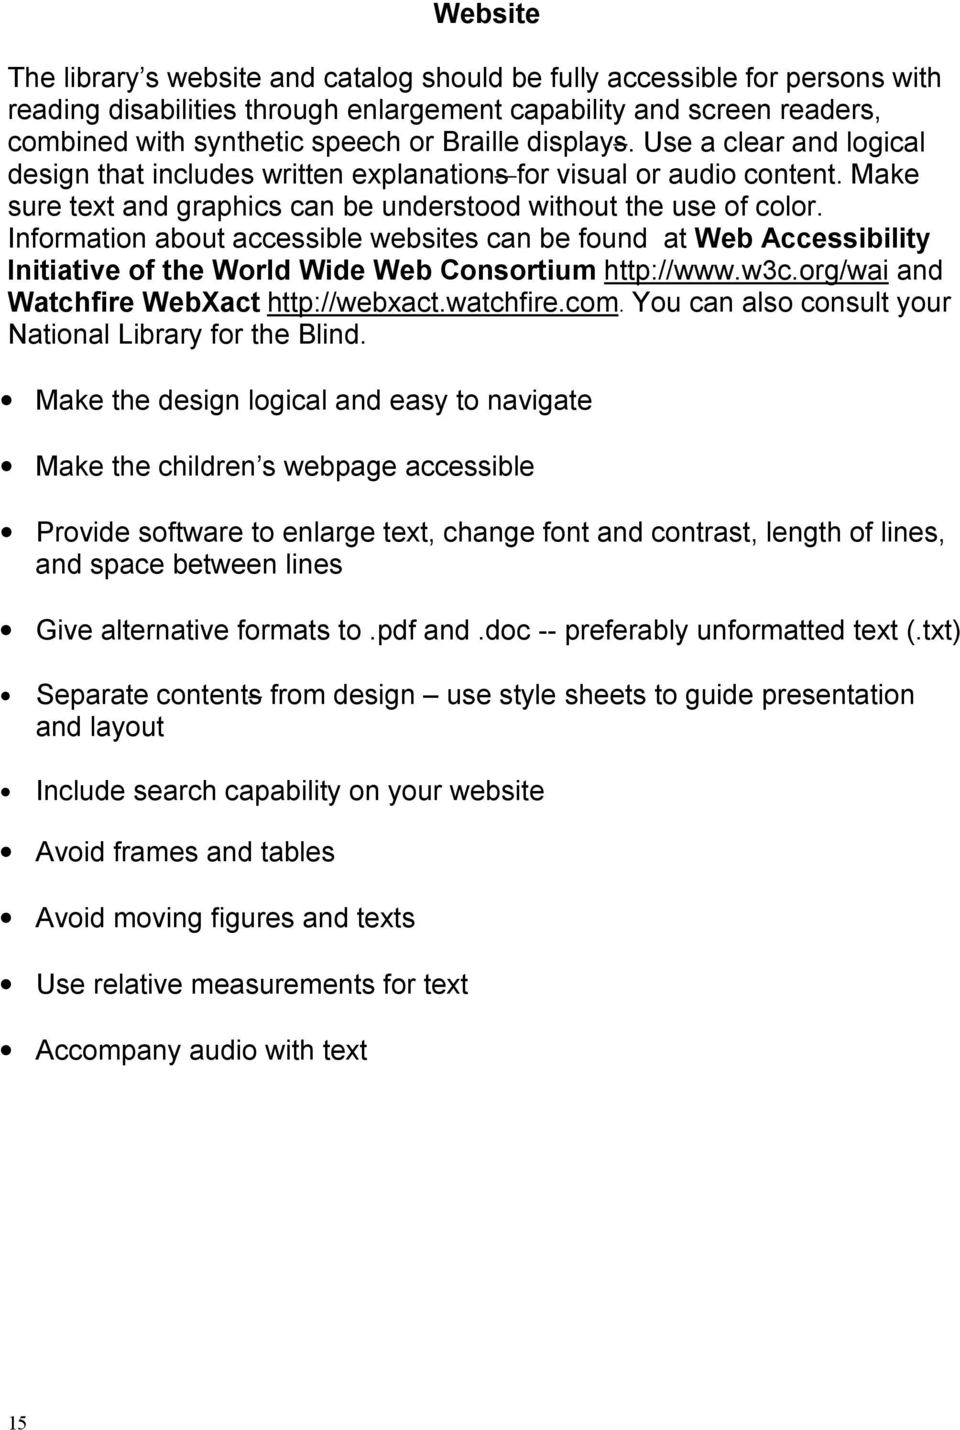 Information about accessible websites can be found at Web Accessibility Initiative of the World Wide Web Consortium http://www.w3c.org/wai and Watchfire WebXact http://webxact.watchfire.com.